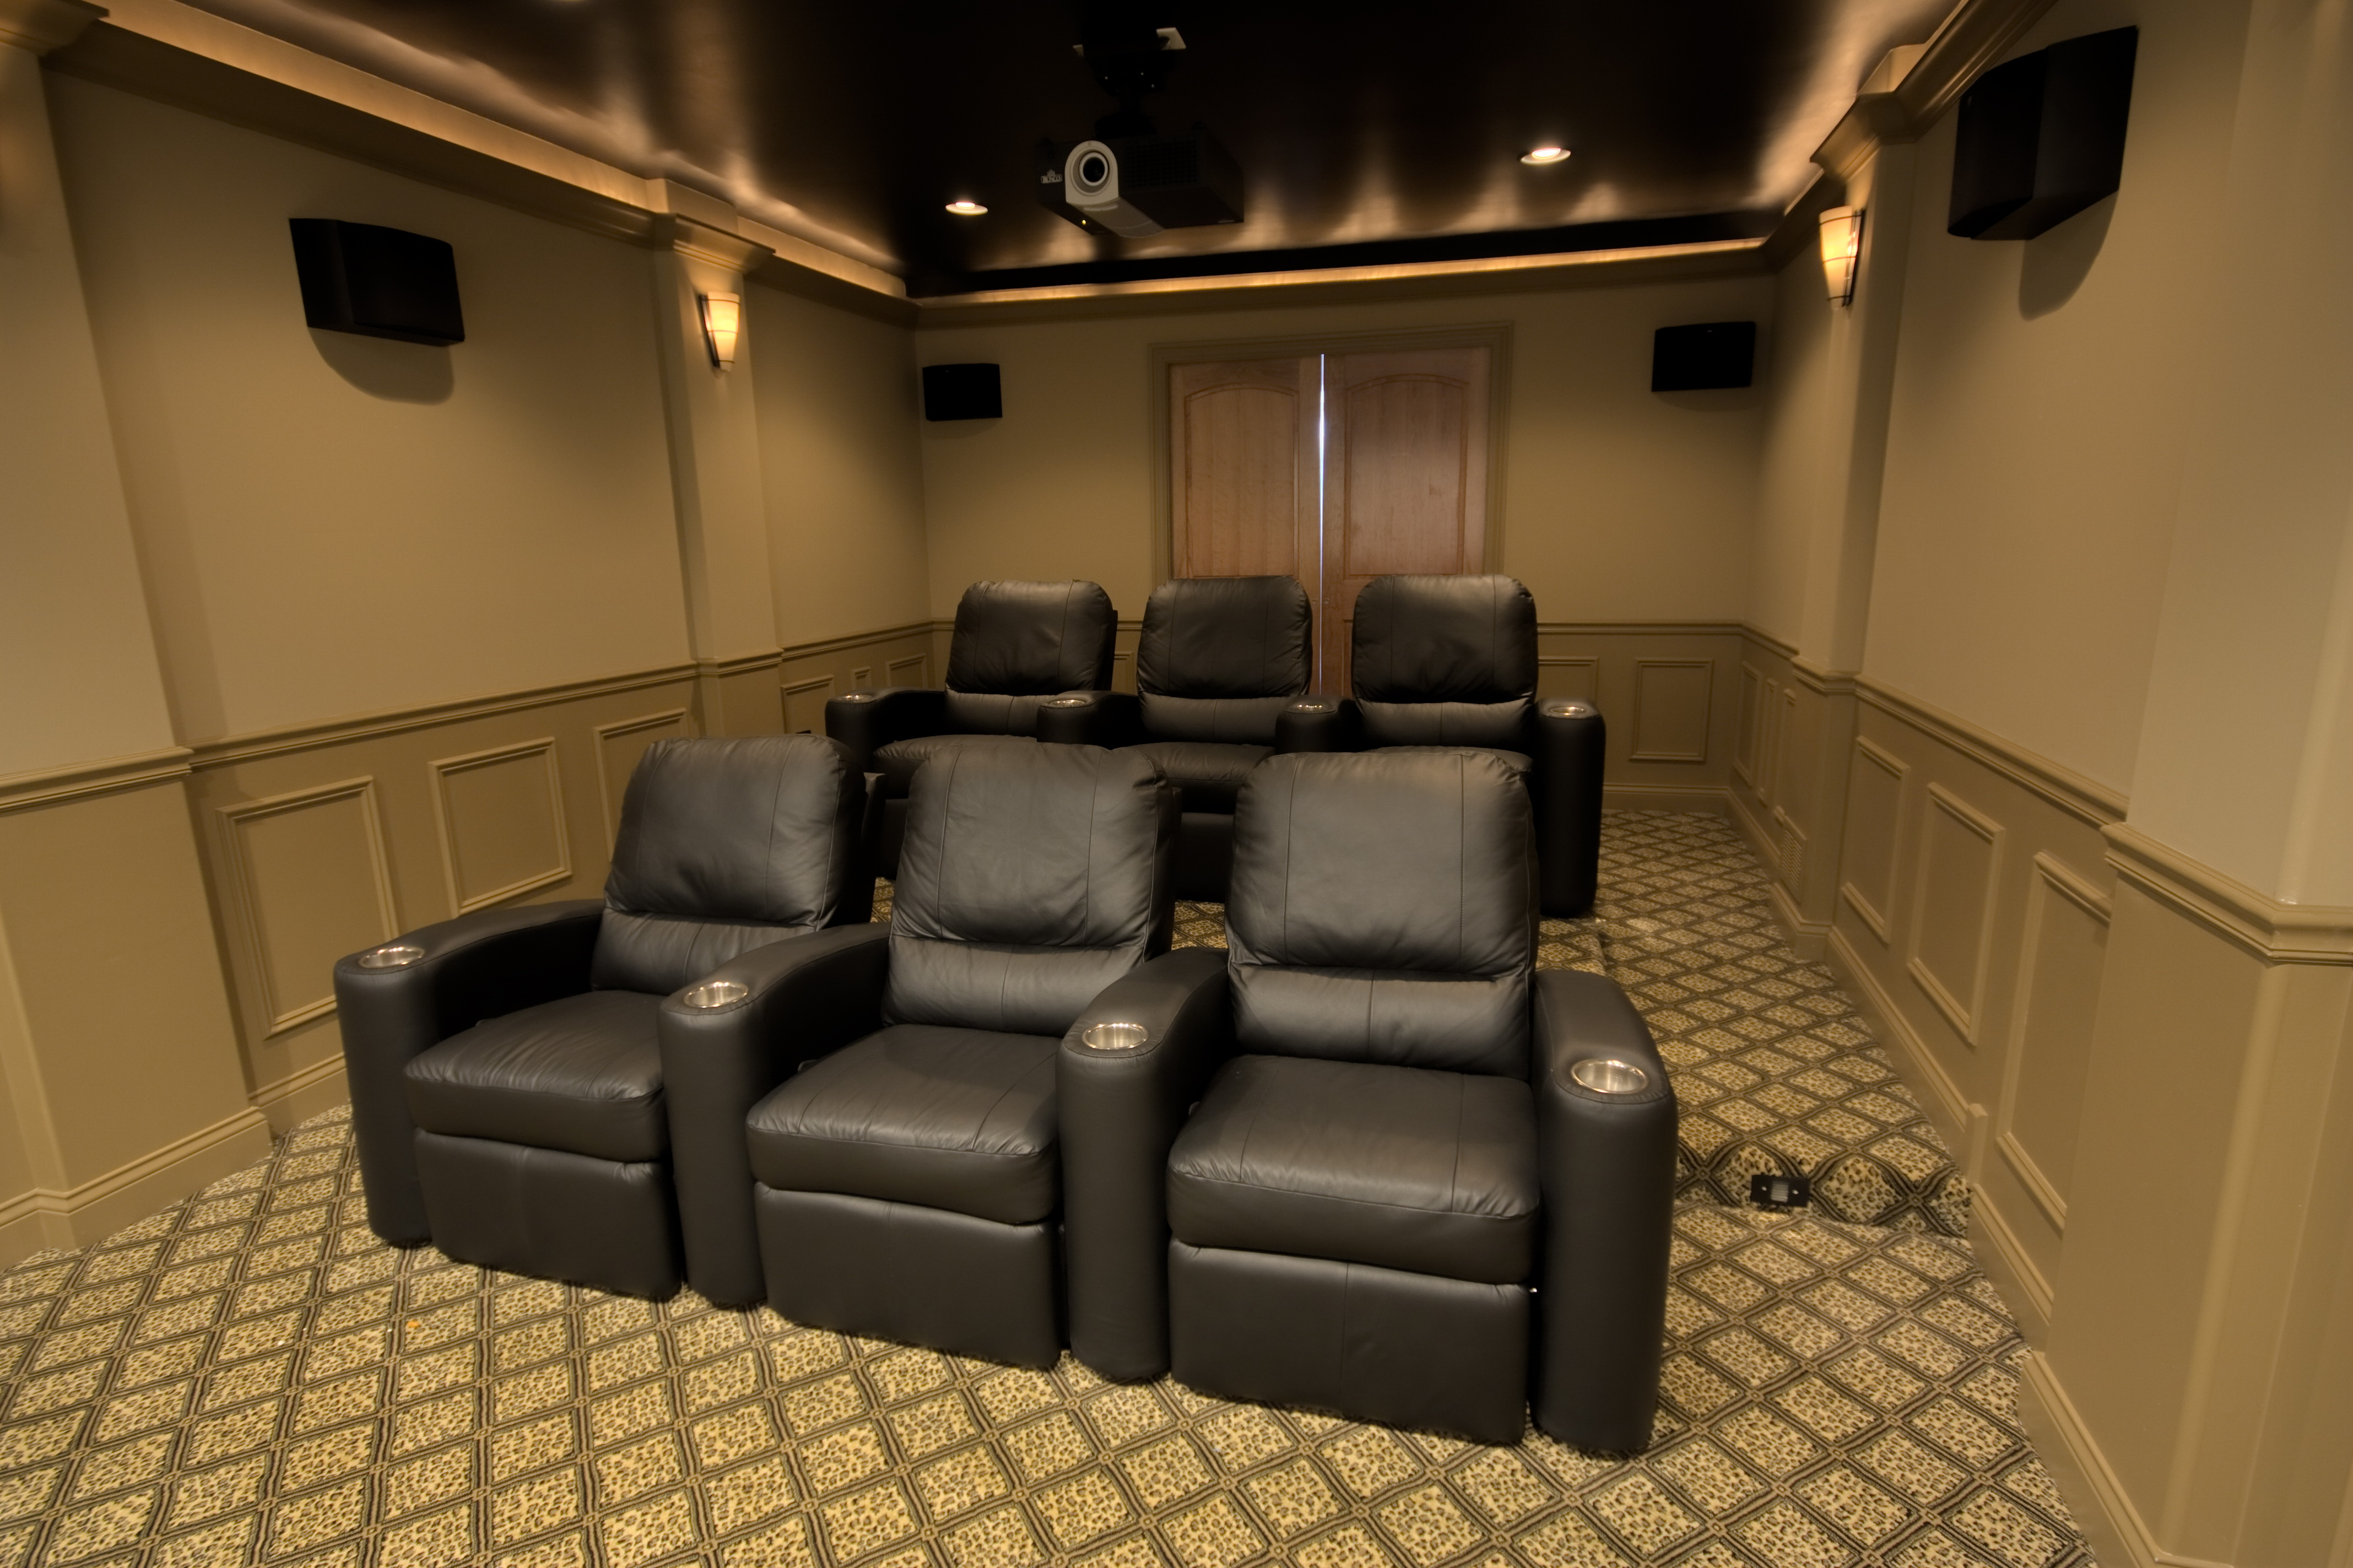 movie theatre chairs for home buy chair covers weddings wholesale balancing the budget sound and vision